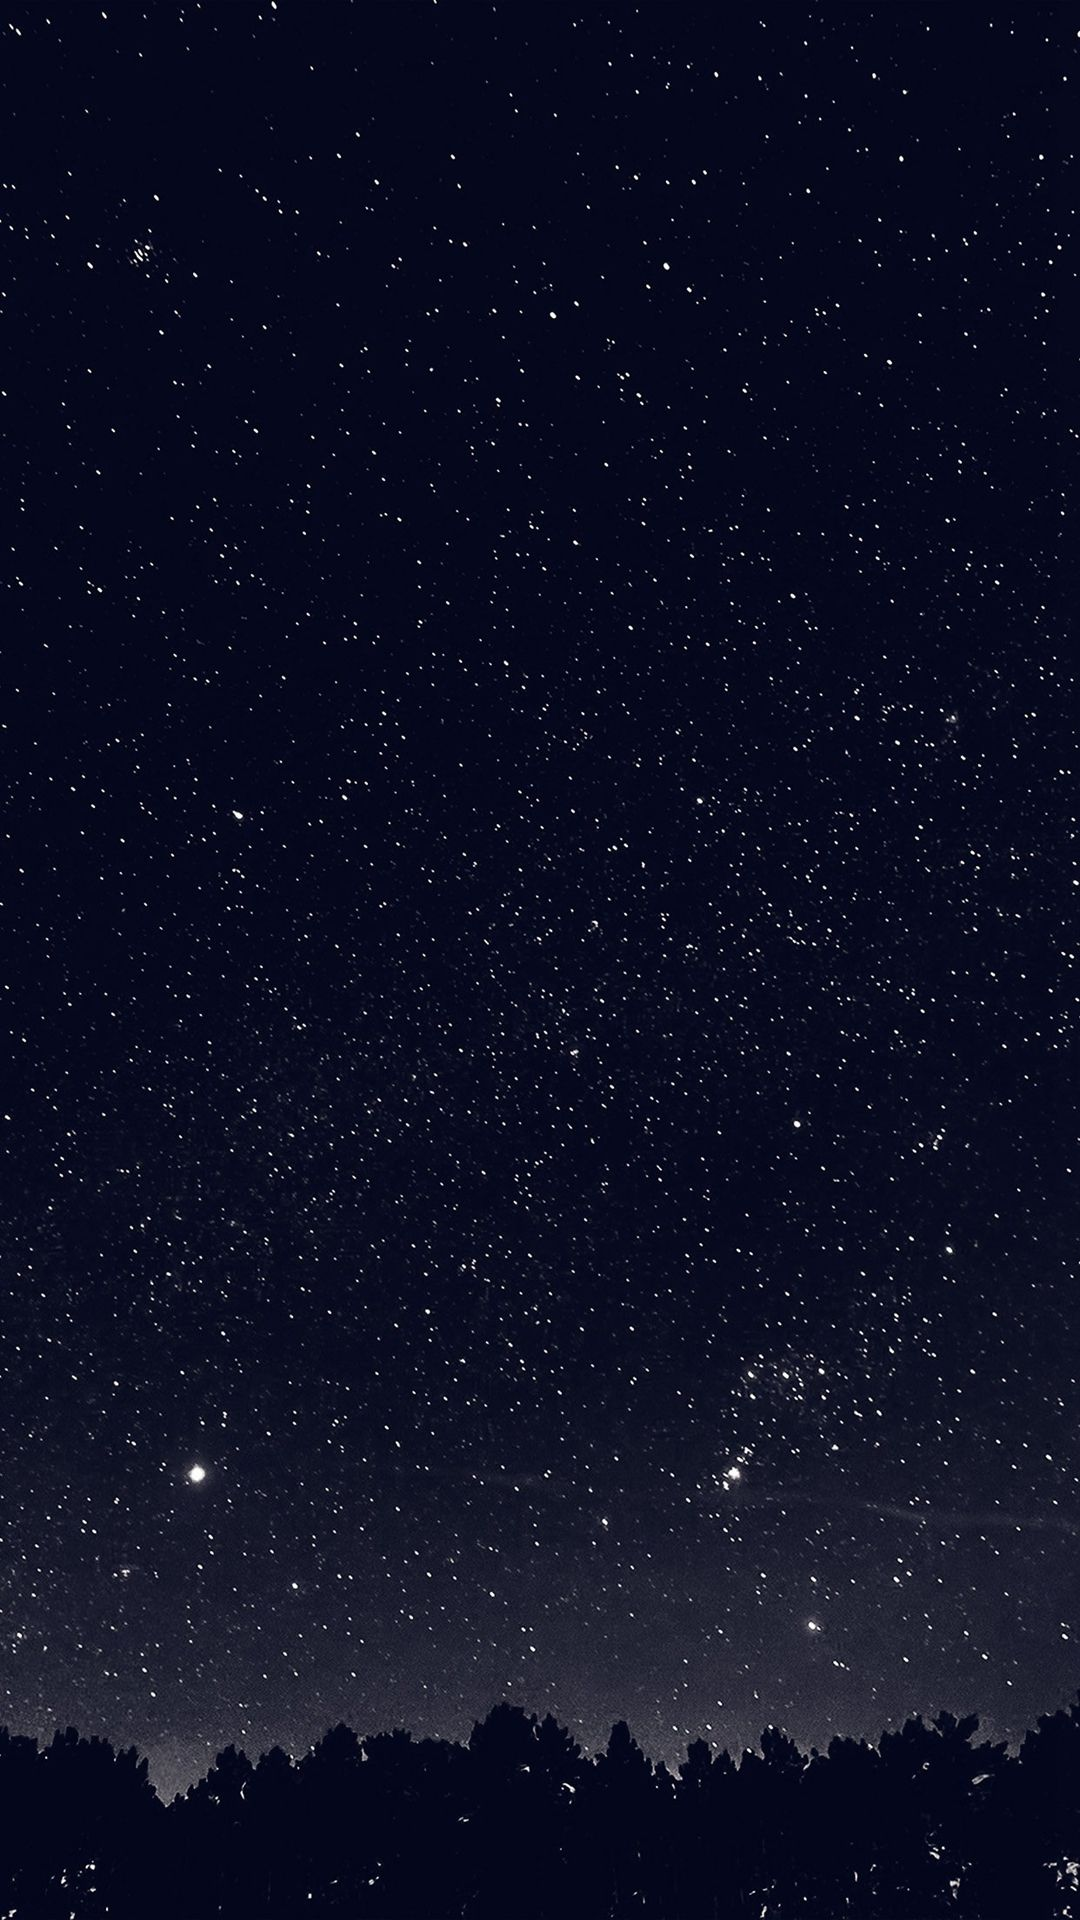 Wallpaper iphone sky - Space Sky Night Dark Nature Bw Iphone 6 Wallpaper